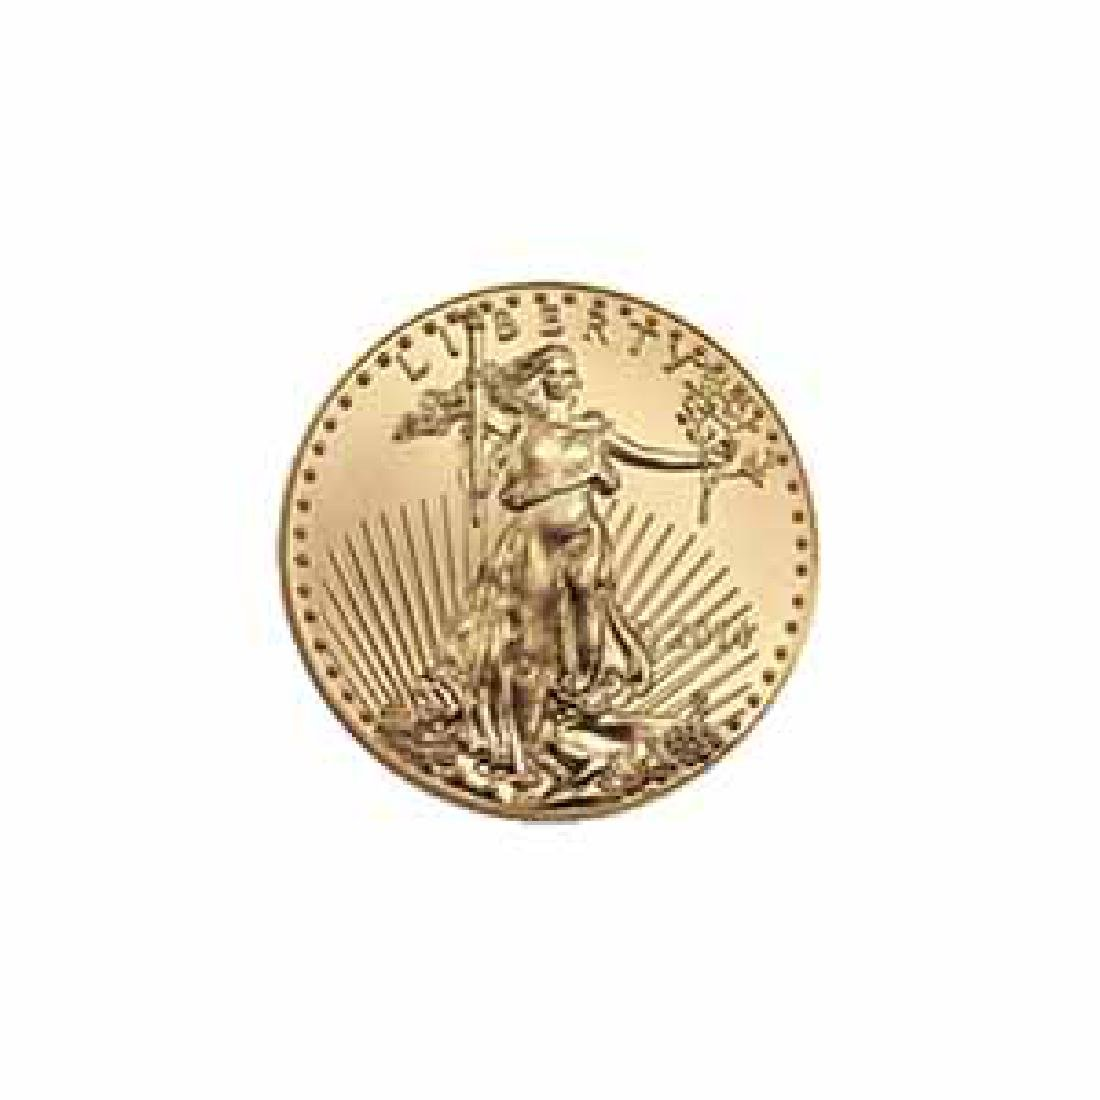 2014 American Gold Eagle 1/10 oz Uncirculated